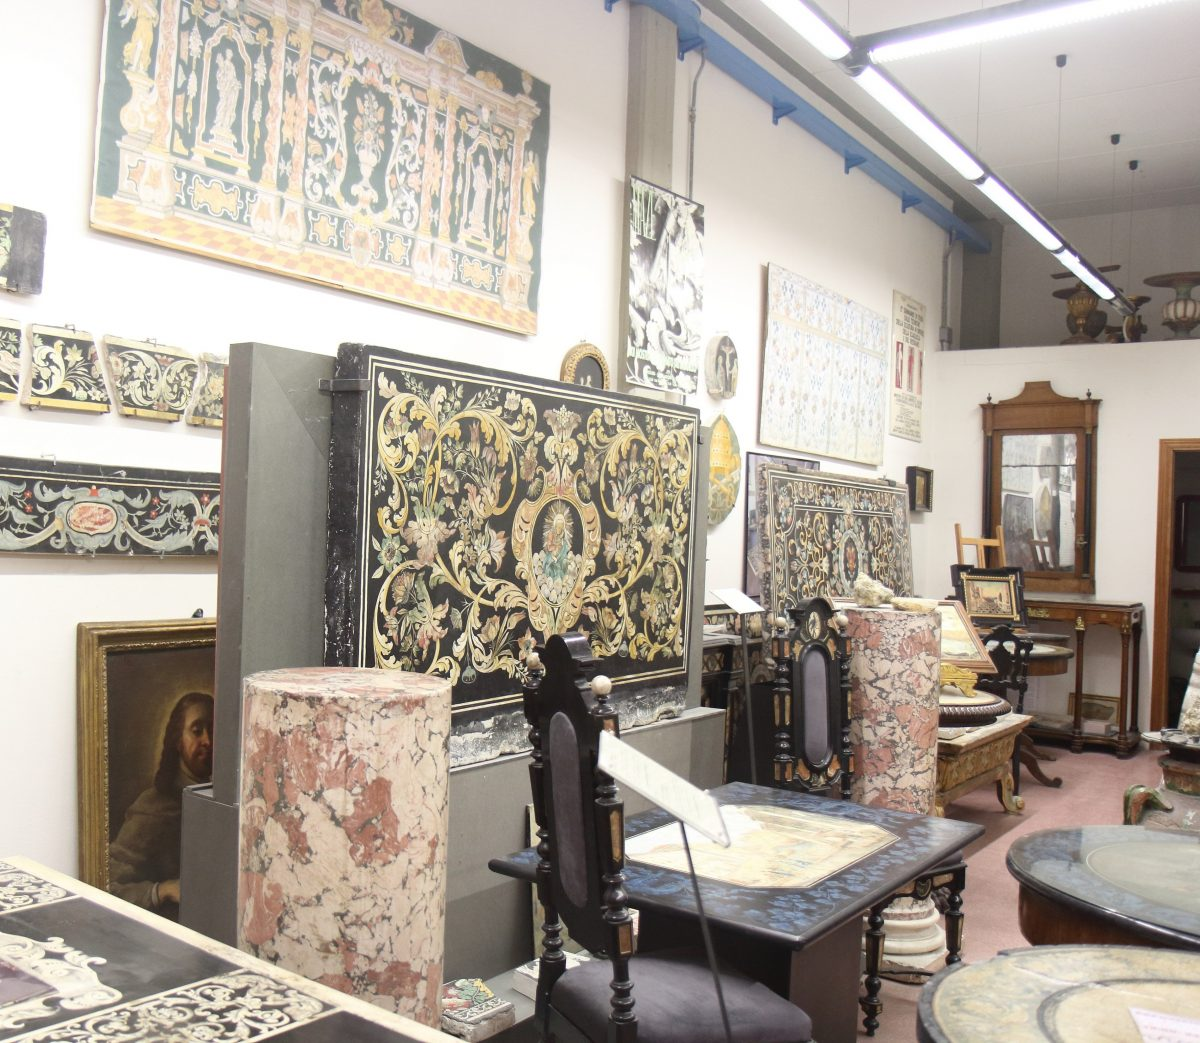 Historic scagliola pieces, Florence.